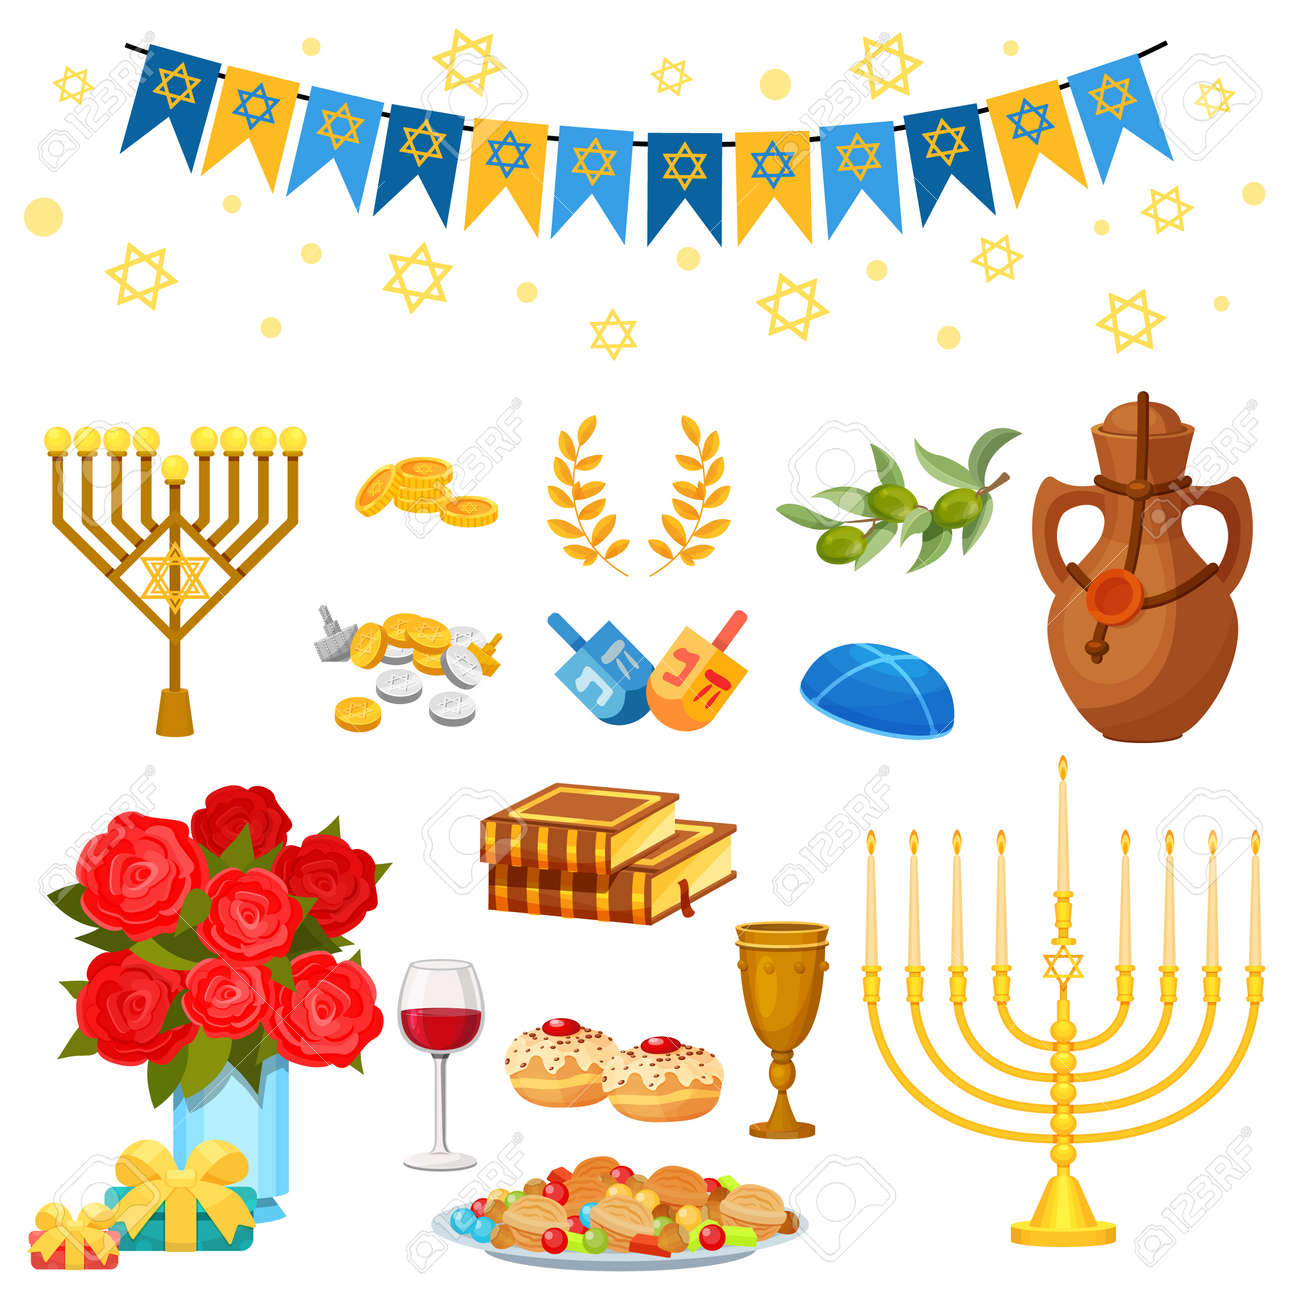 when is the jewish holiday